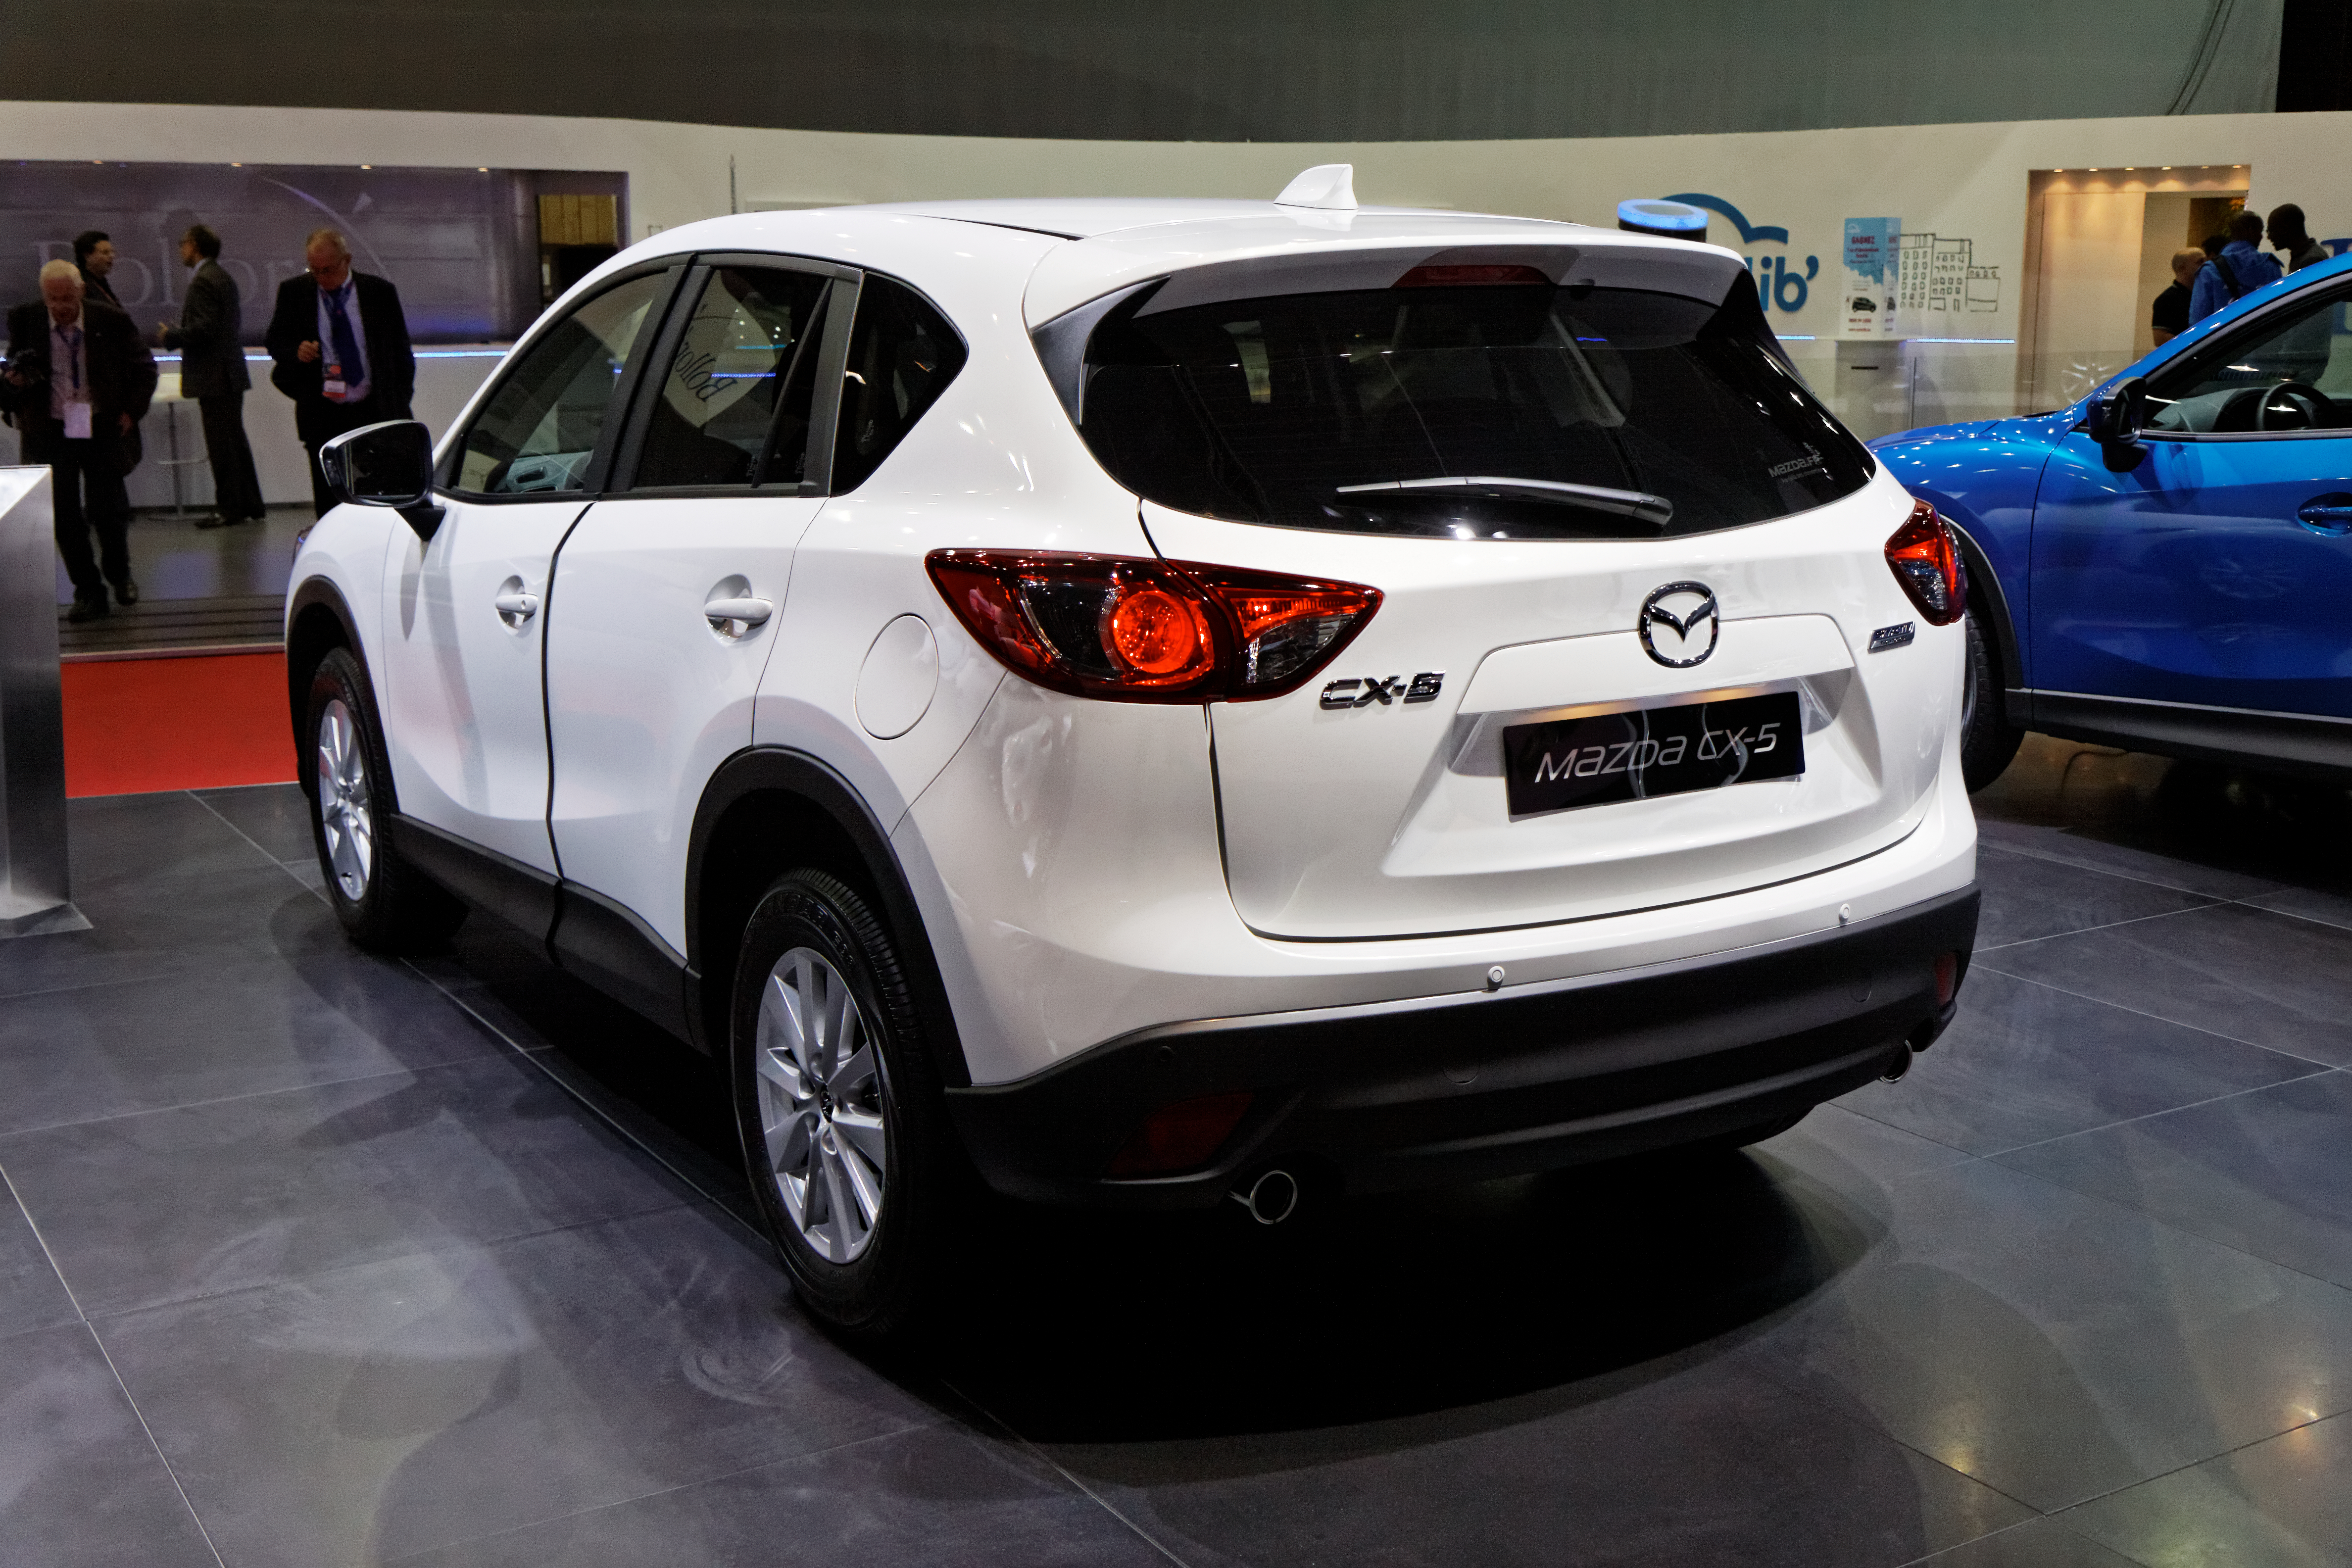 file:mazda cx-5 - mondial de l'automobile de paris 2012 - 009